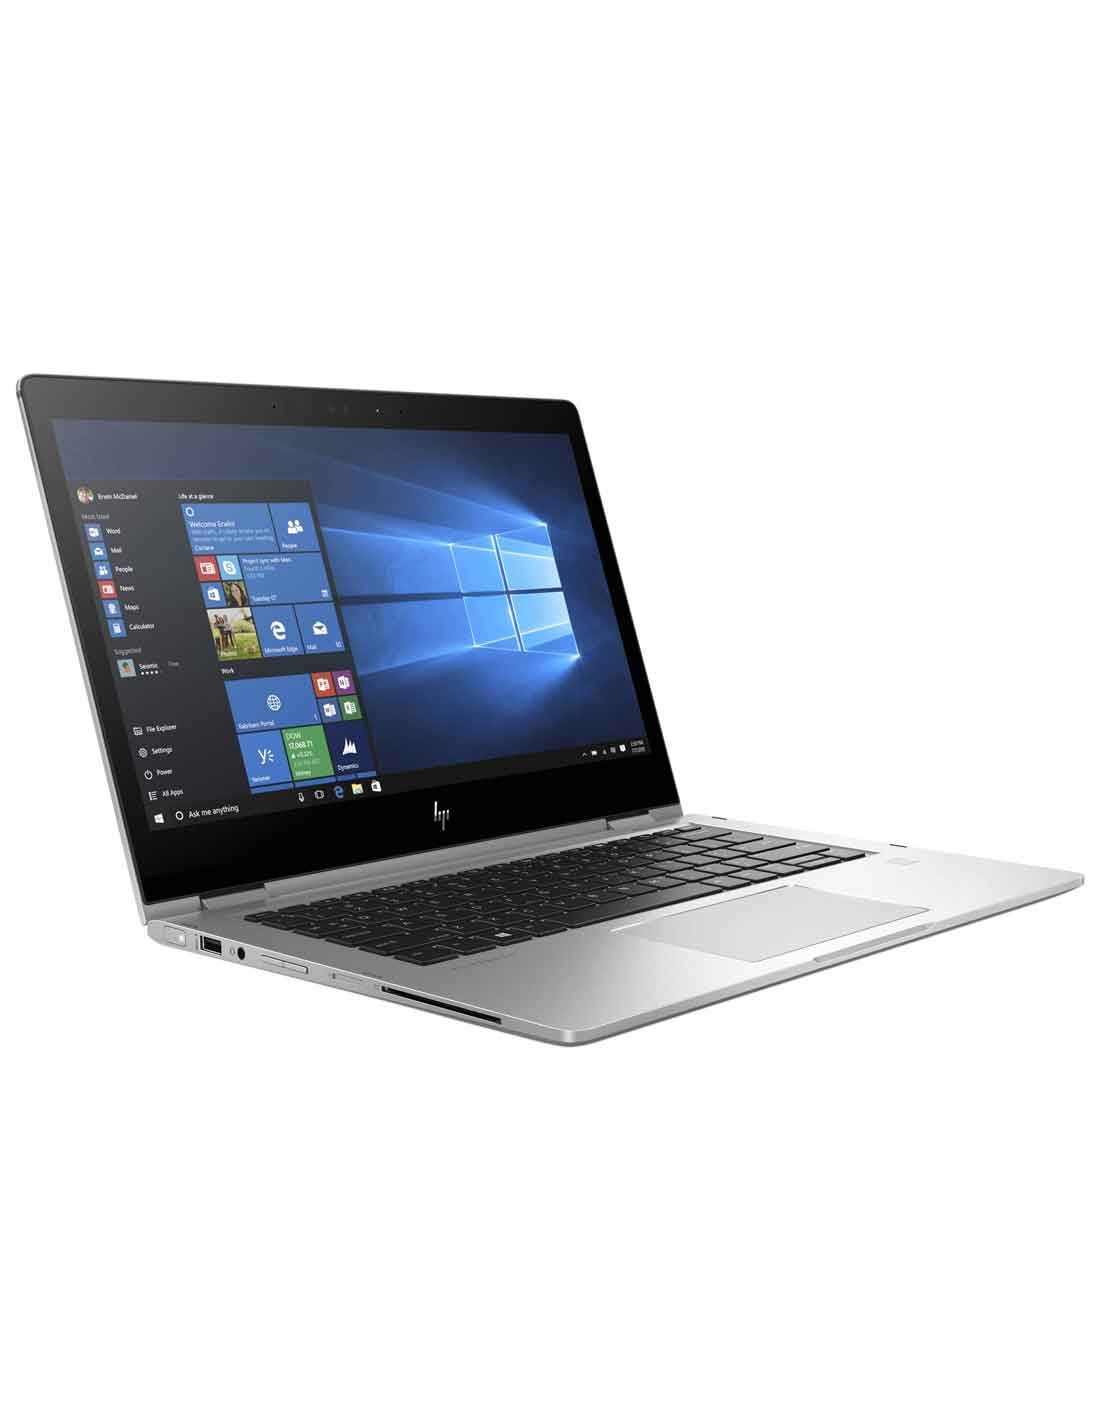 HP EliteBook x360 1030 G2 16GB Memory at the cheapest price in Dubai Online Store